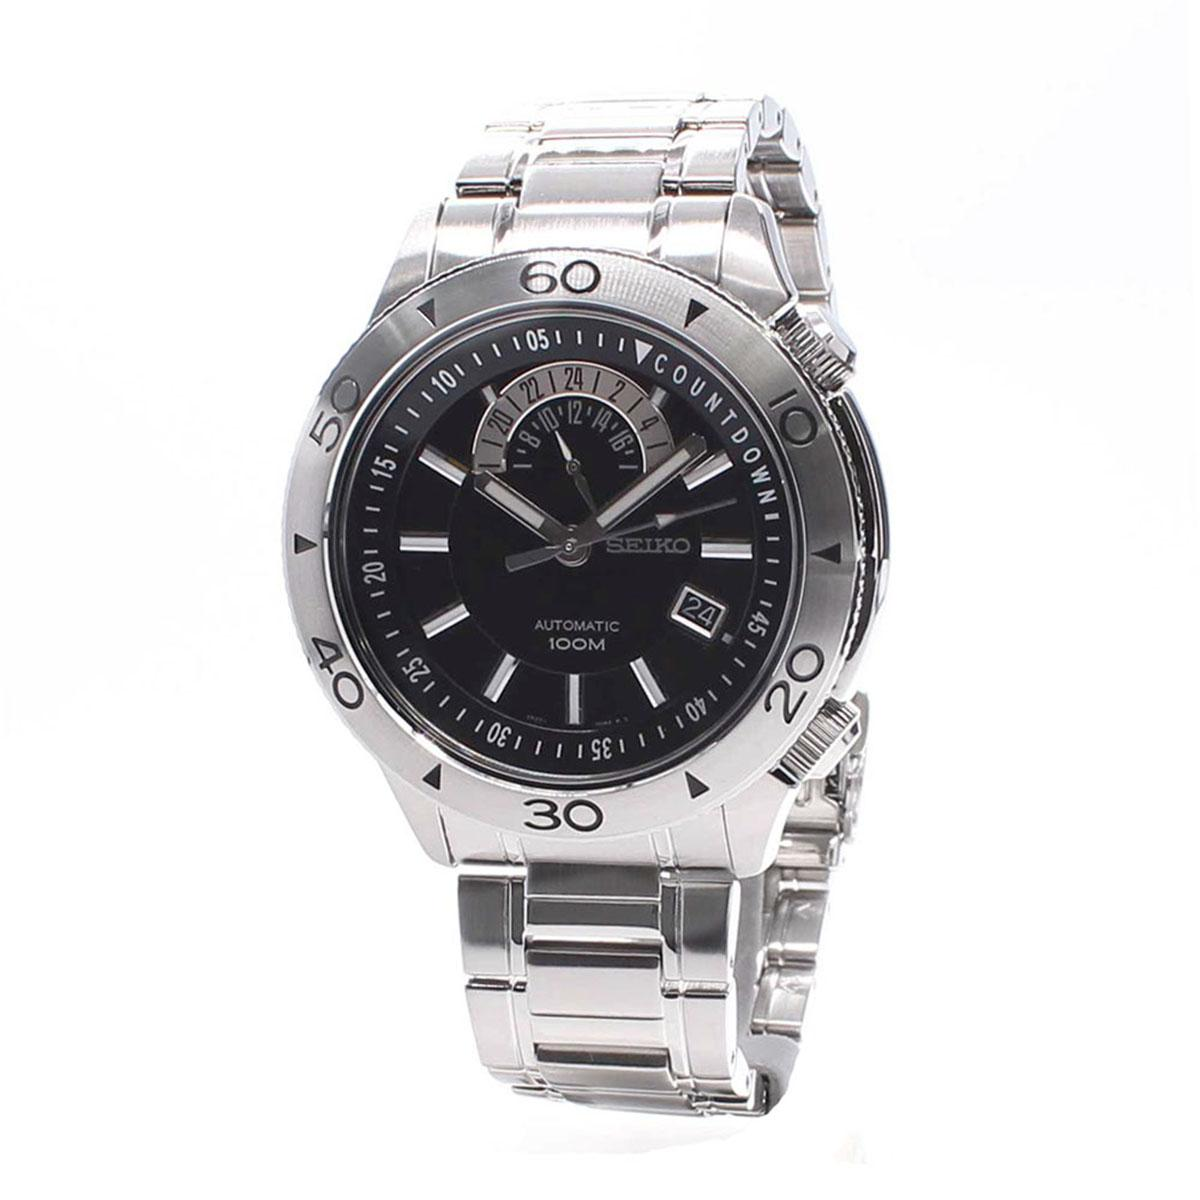 Seiko Analog Superior Automatic Jam Tangan Strap Stainless Steel Sgee73p1 Silver Case Bracelet Mens Nwt